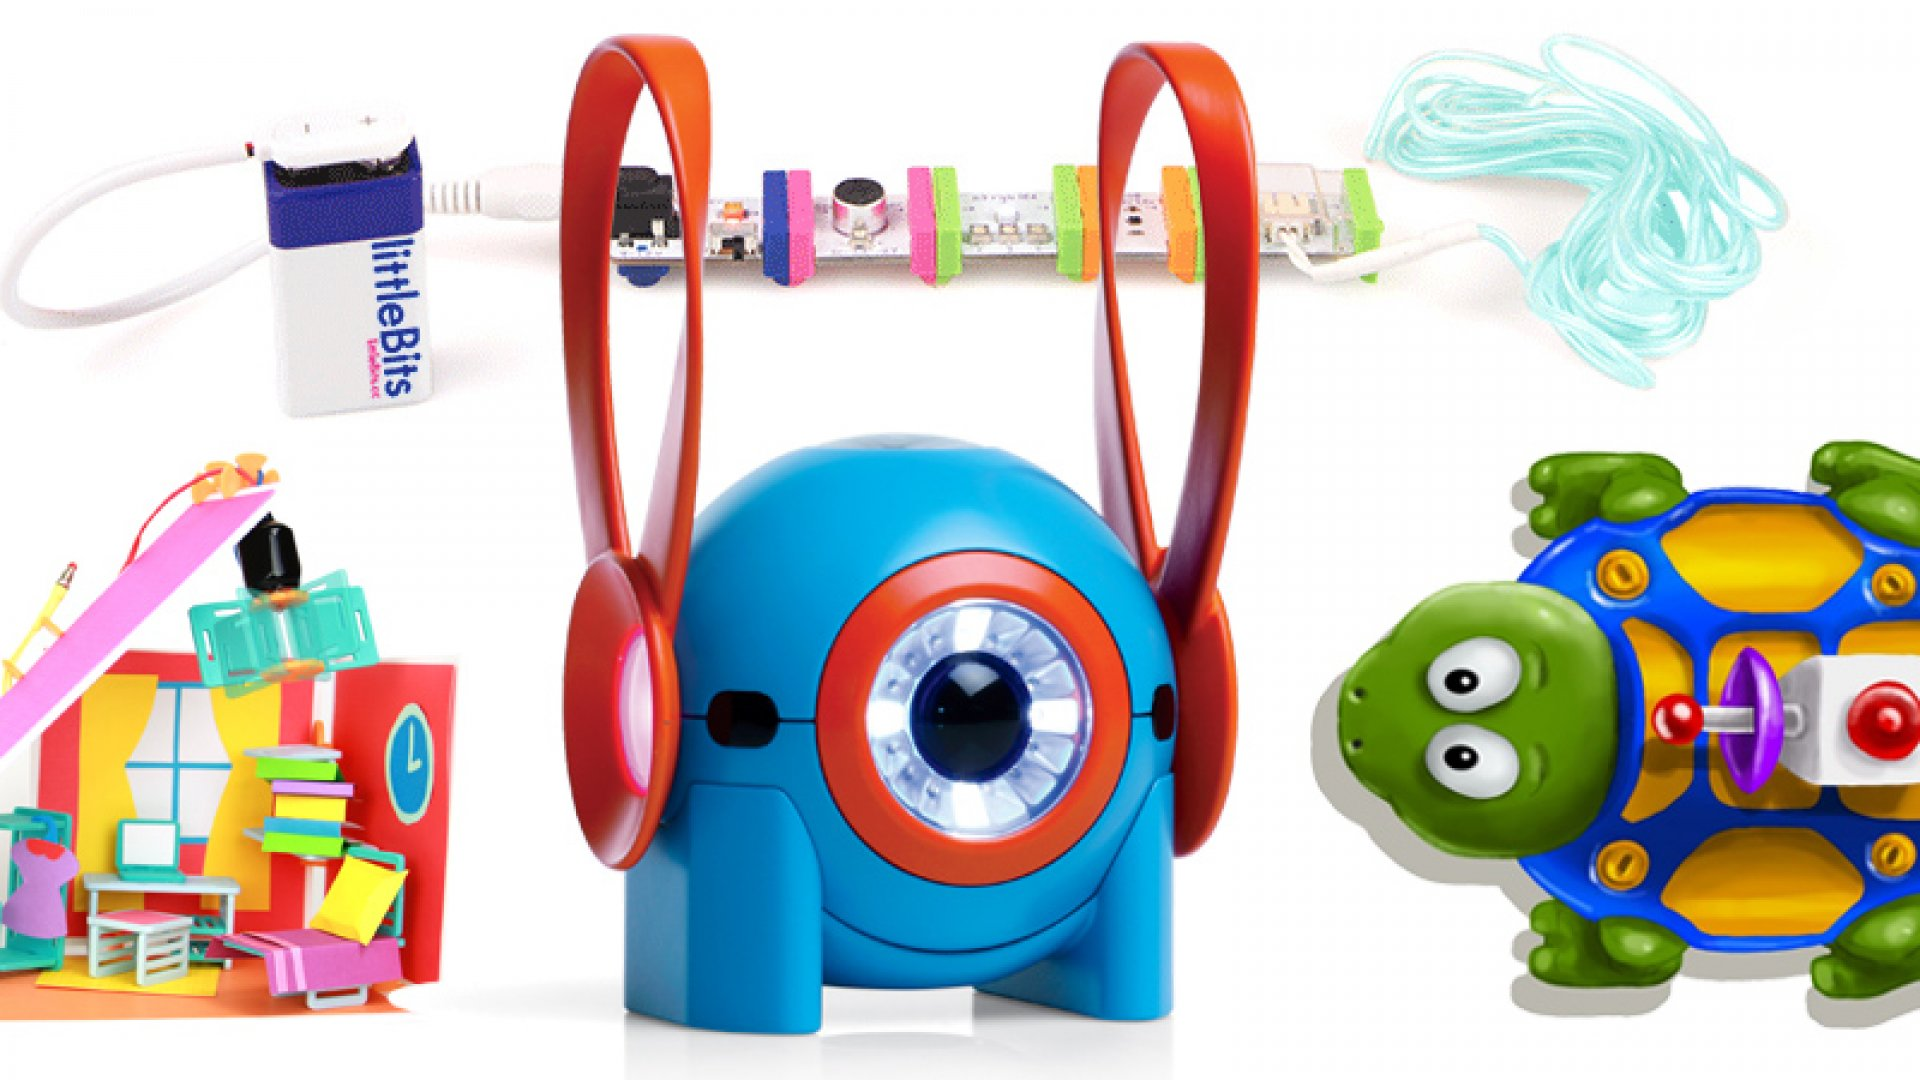 These toys teach kids engineering and programming skills that are useful for them, and more fun for their parents.<br>